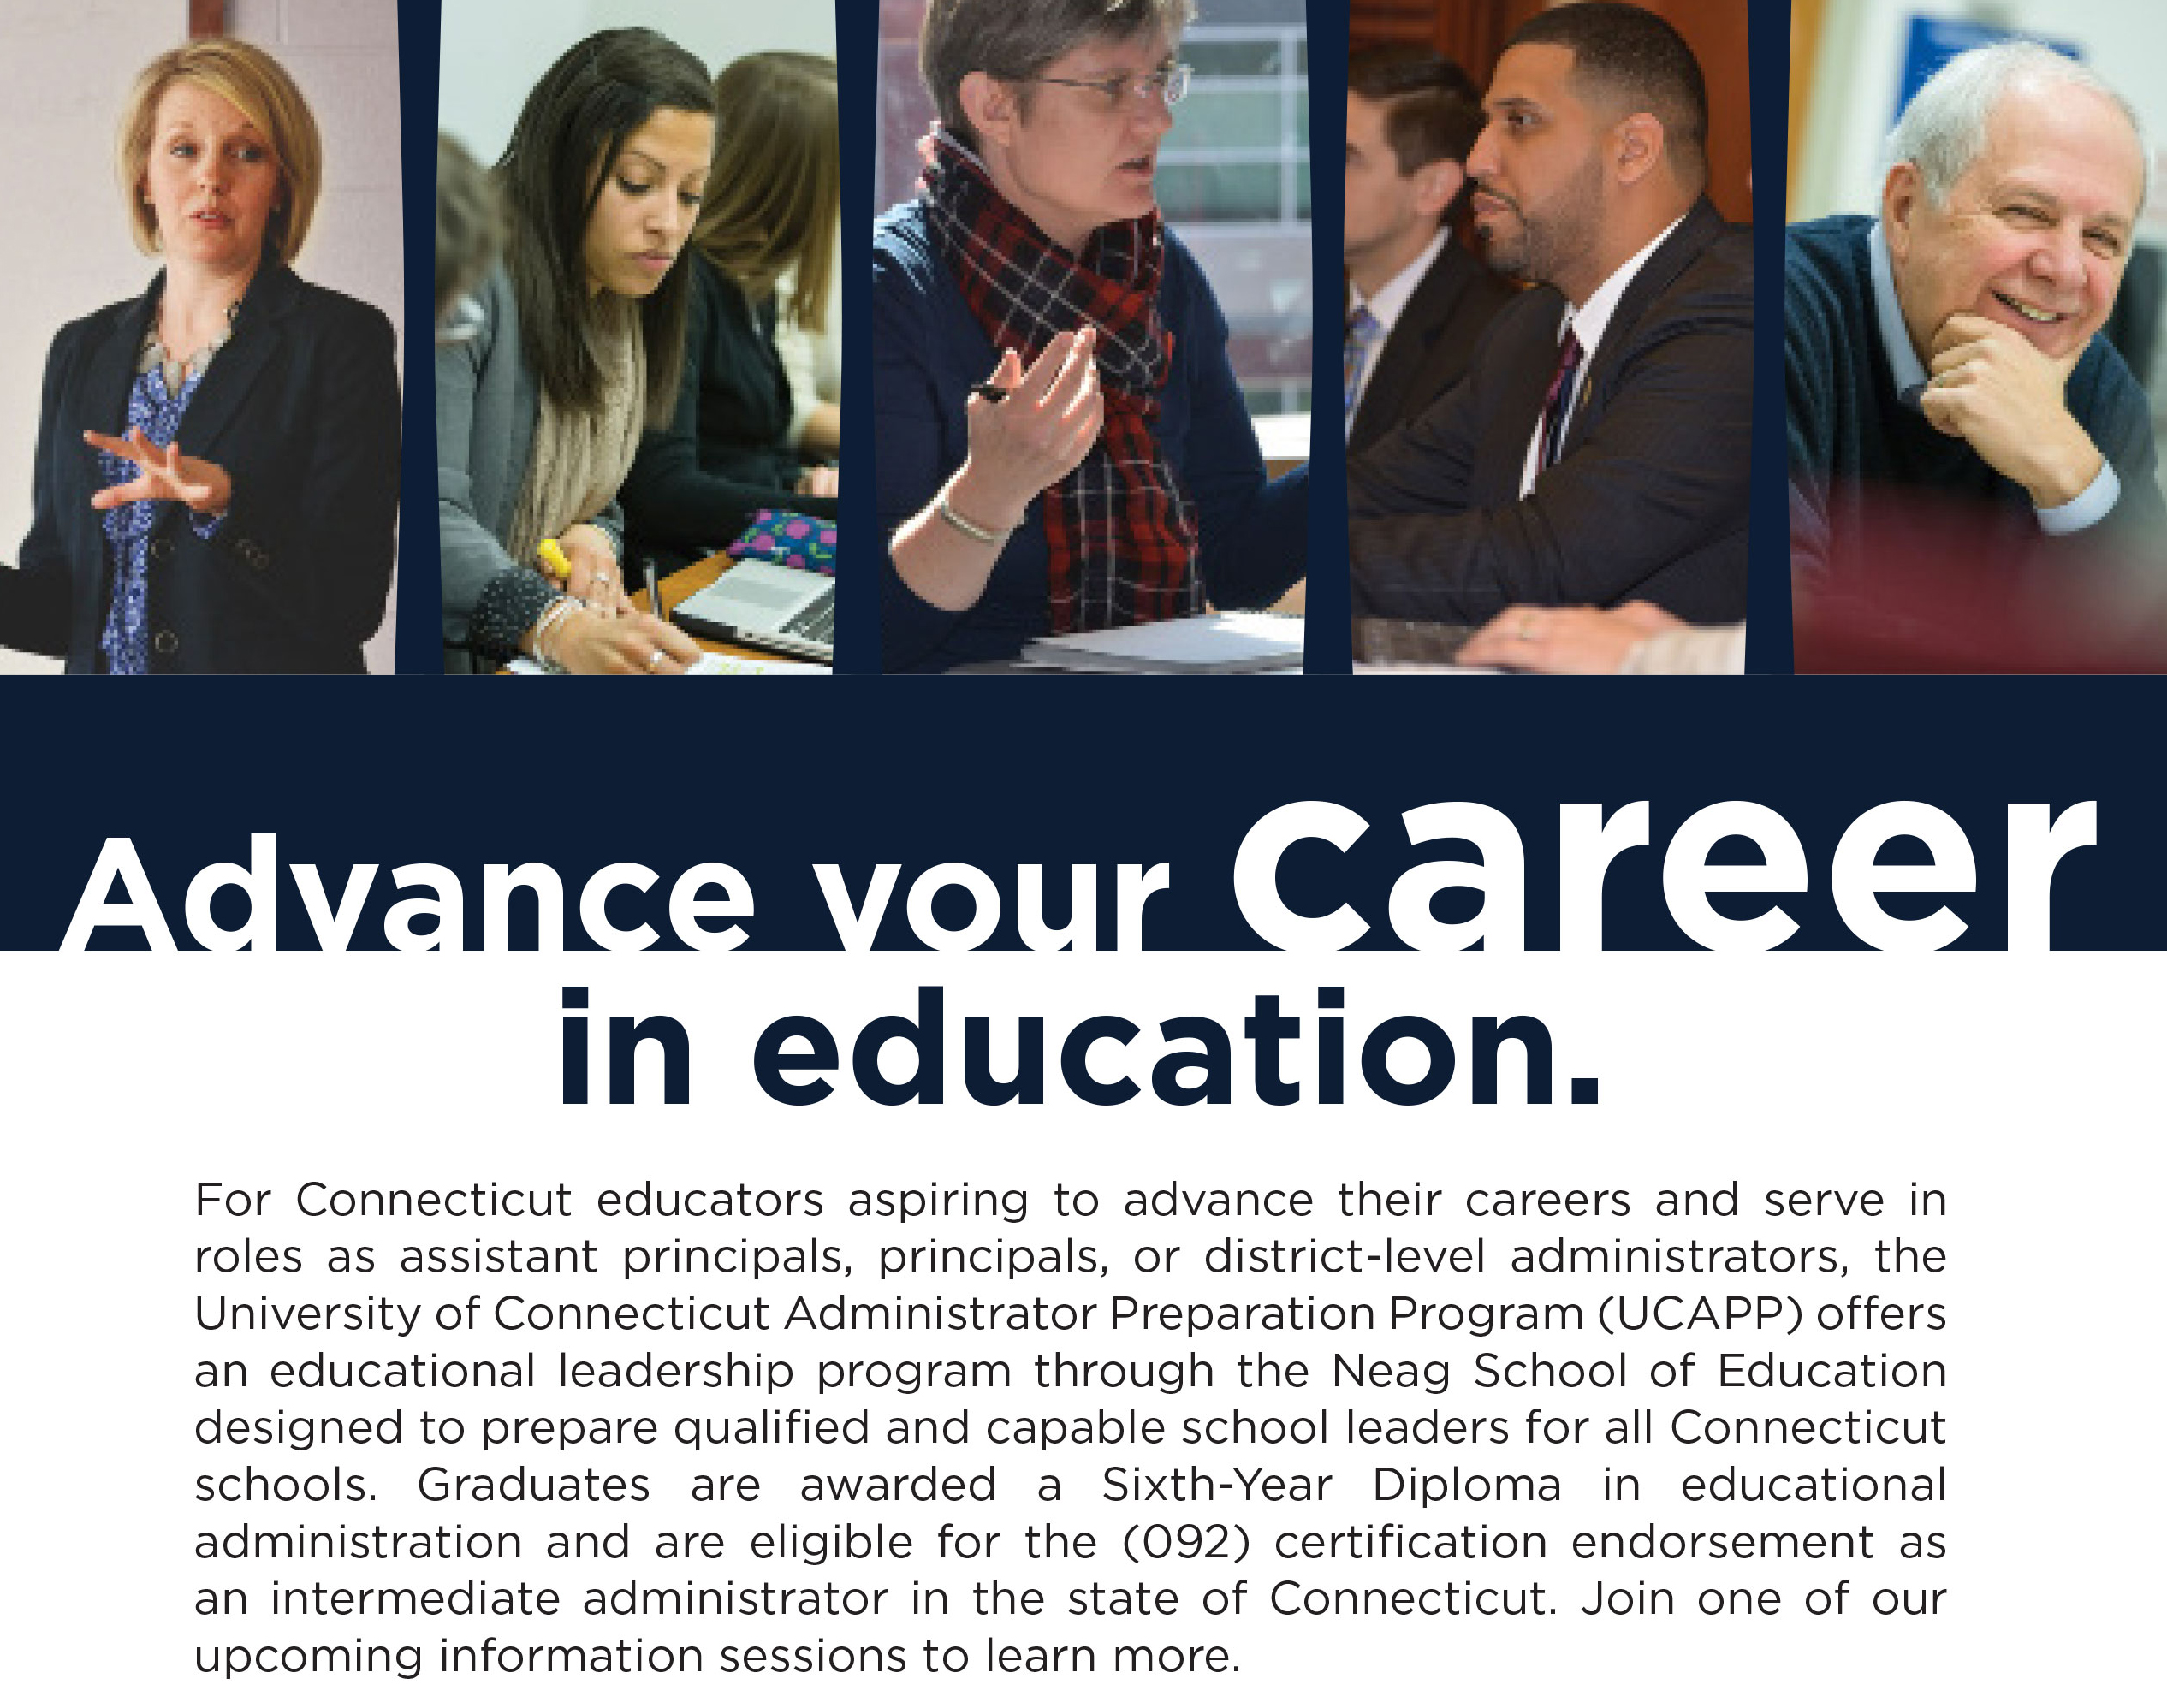 Advance your career in education ad.